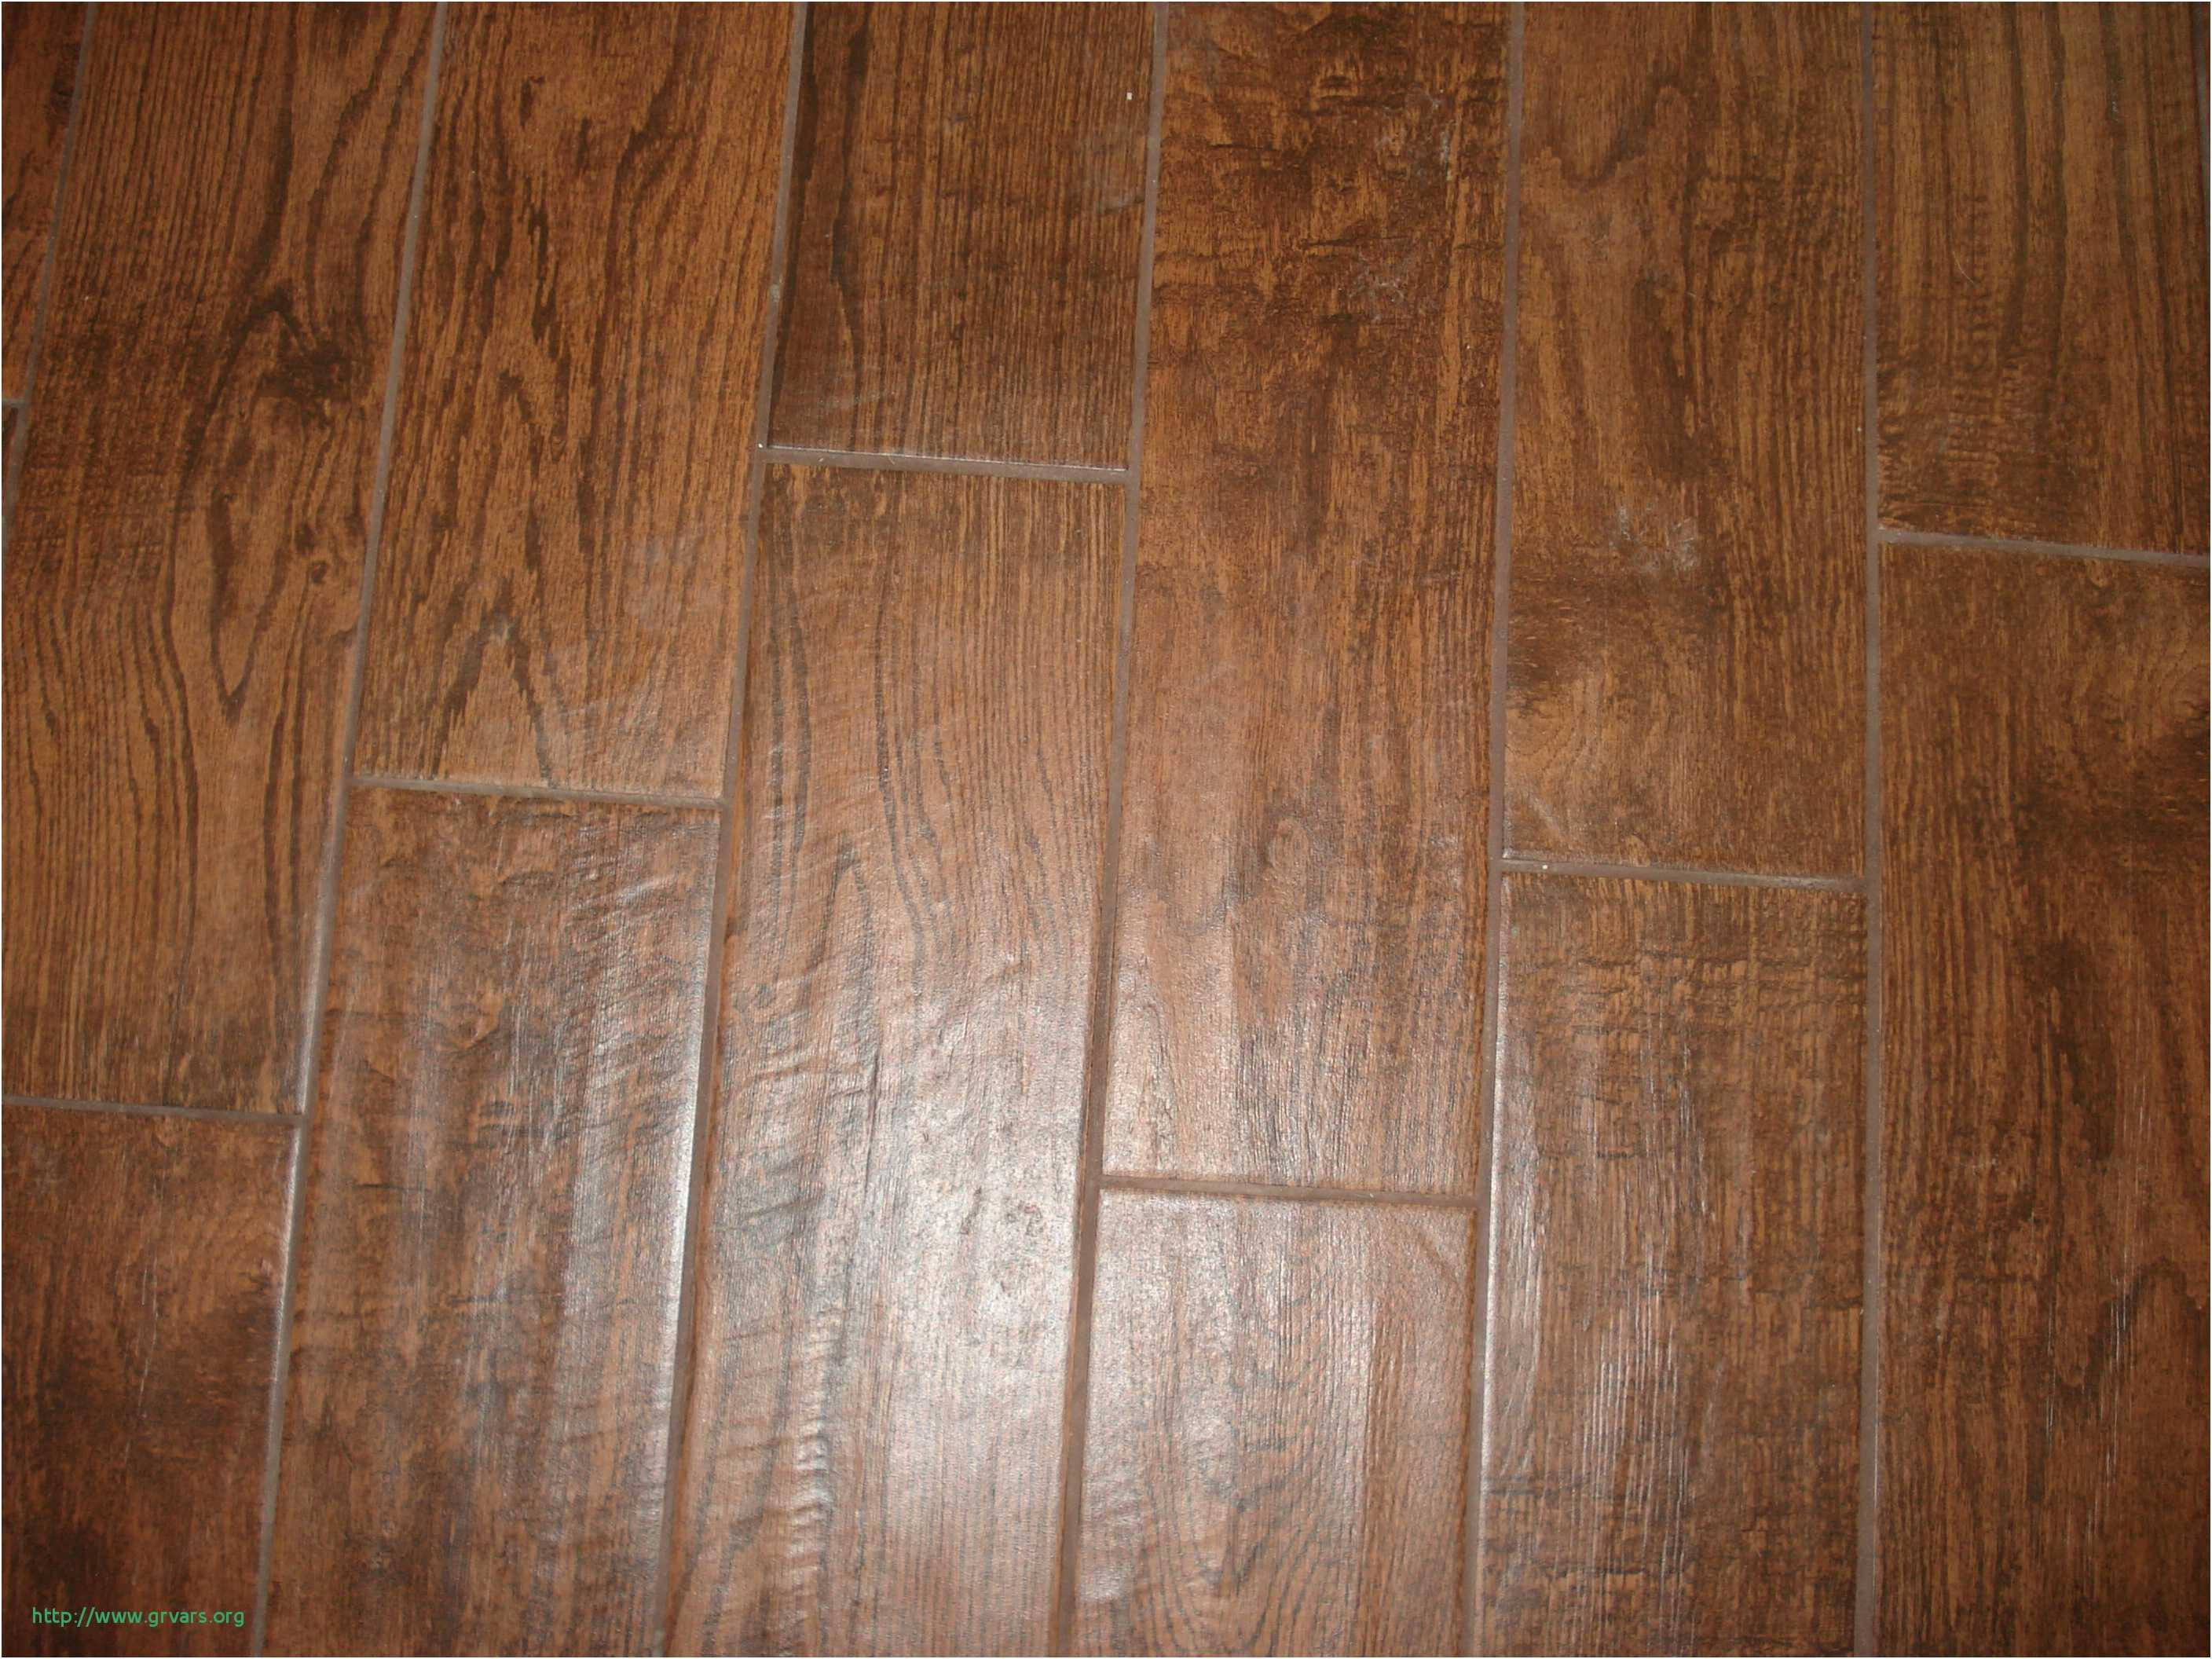 how to install hardwood floors in kitchen of 10 does home depot install flooring on a budget best flooring ideas with regard to joys kitchen 0d luxury ceramic tile our wood look ceramic tile is finally installed concept of home depot free flooring installation of home depot free